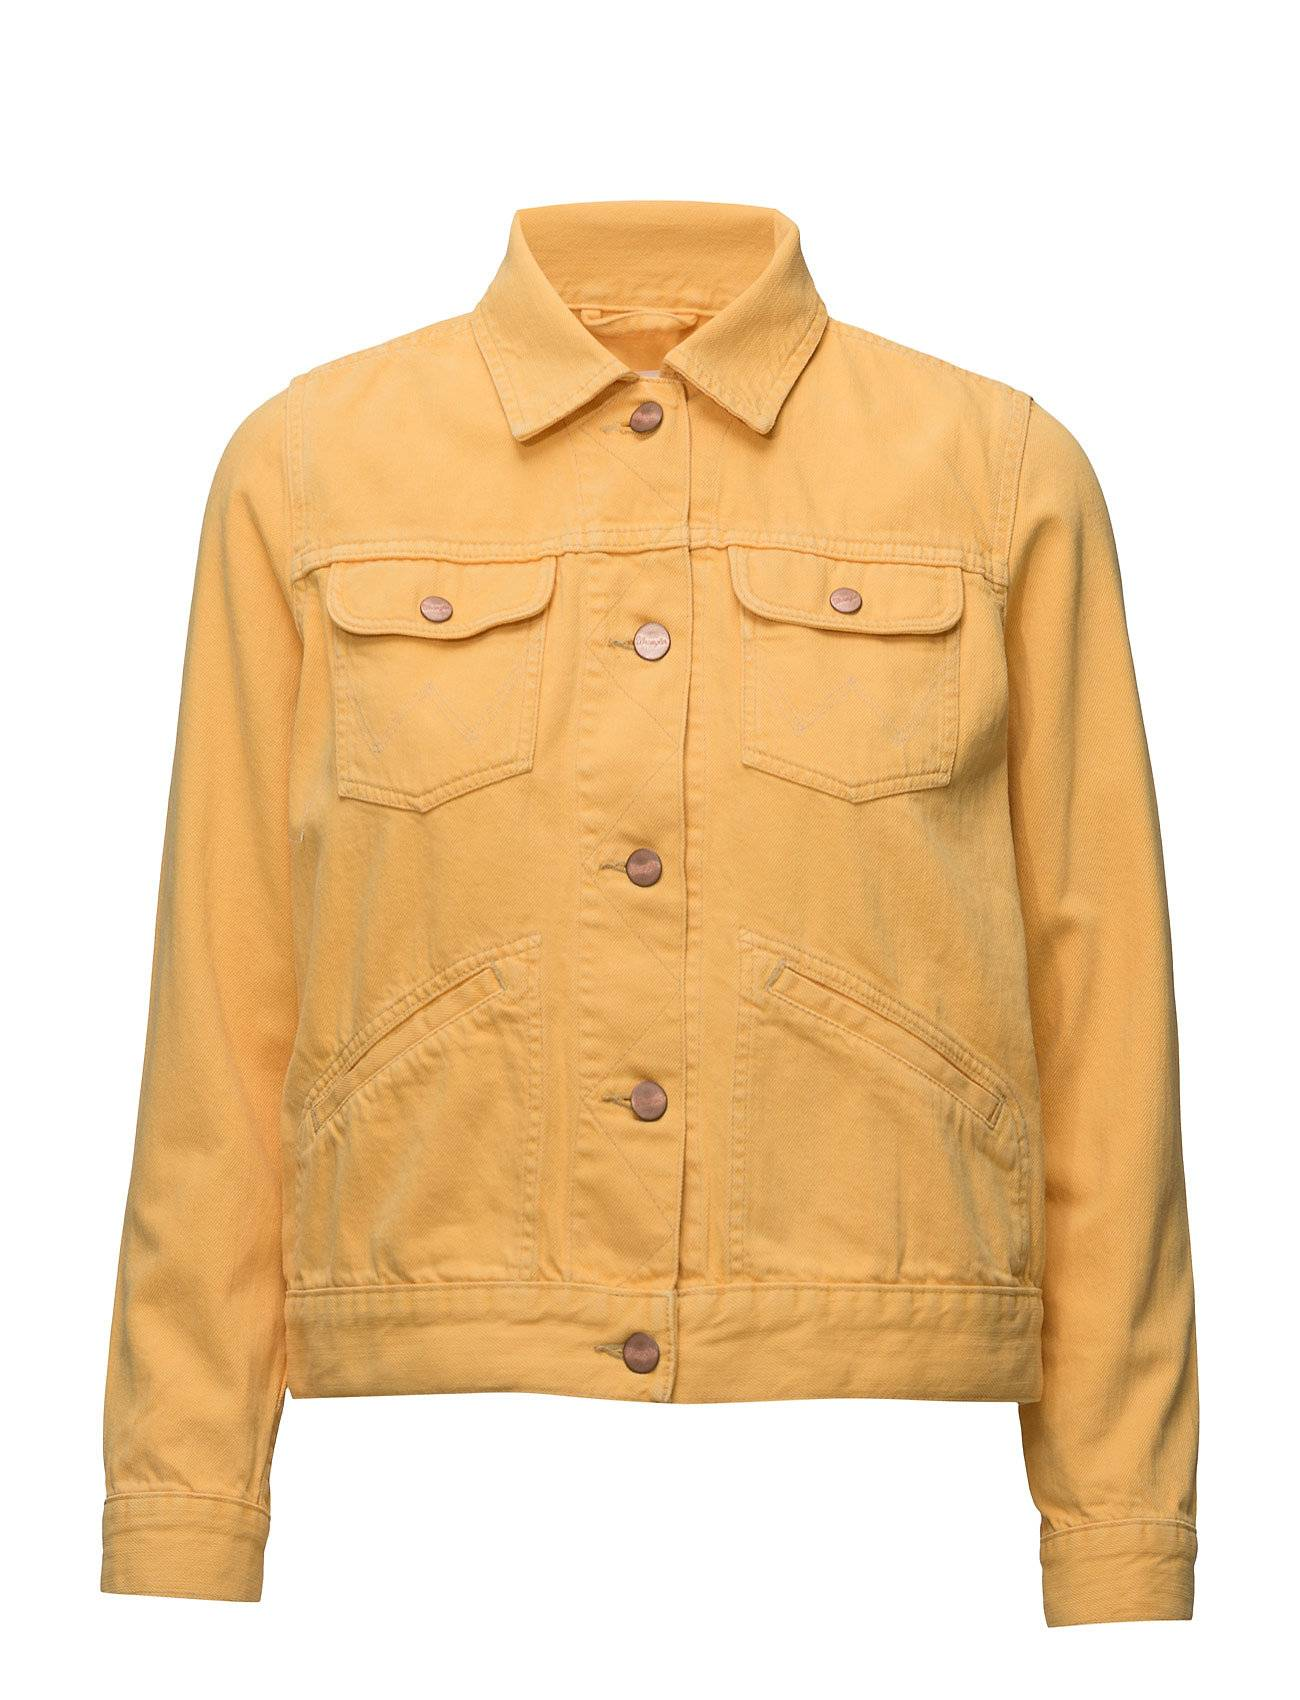 Wrangler Heritage Jacket Yellow